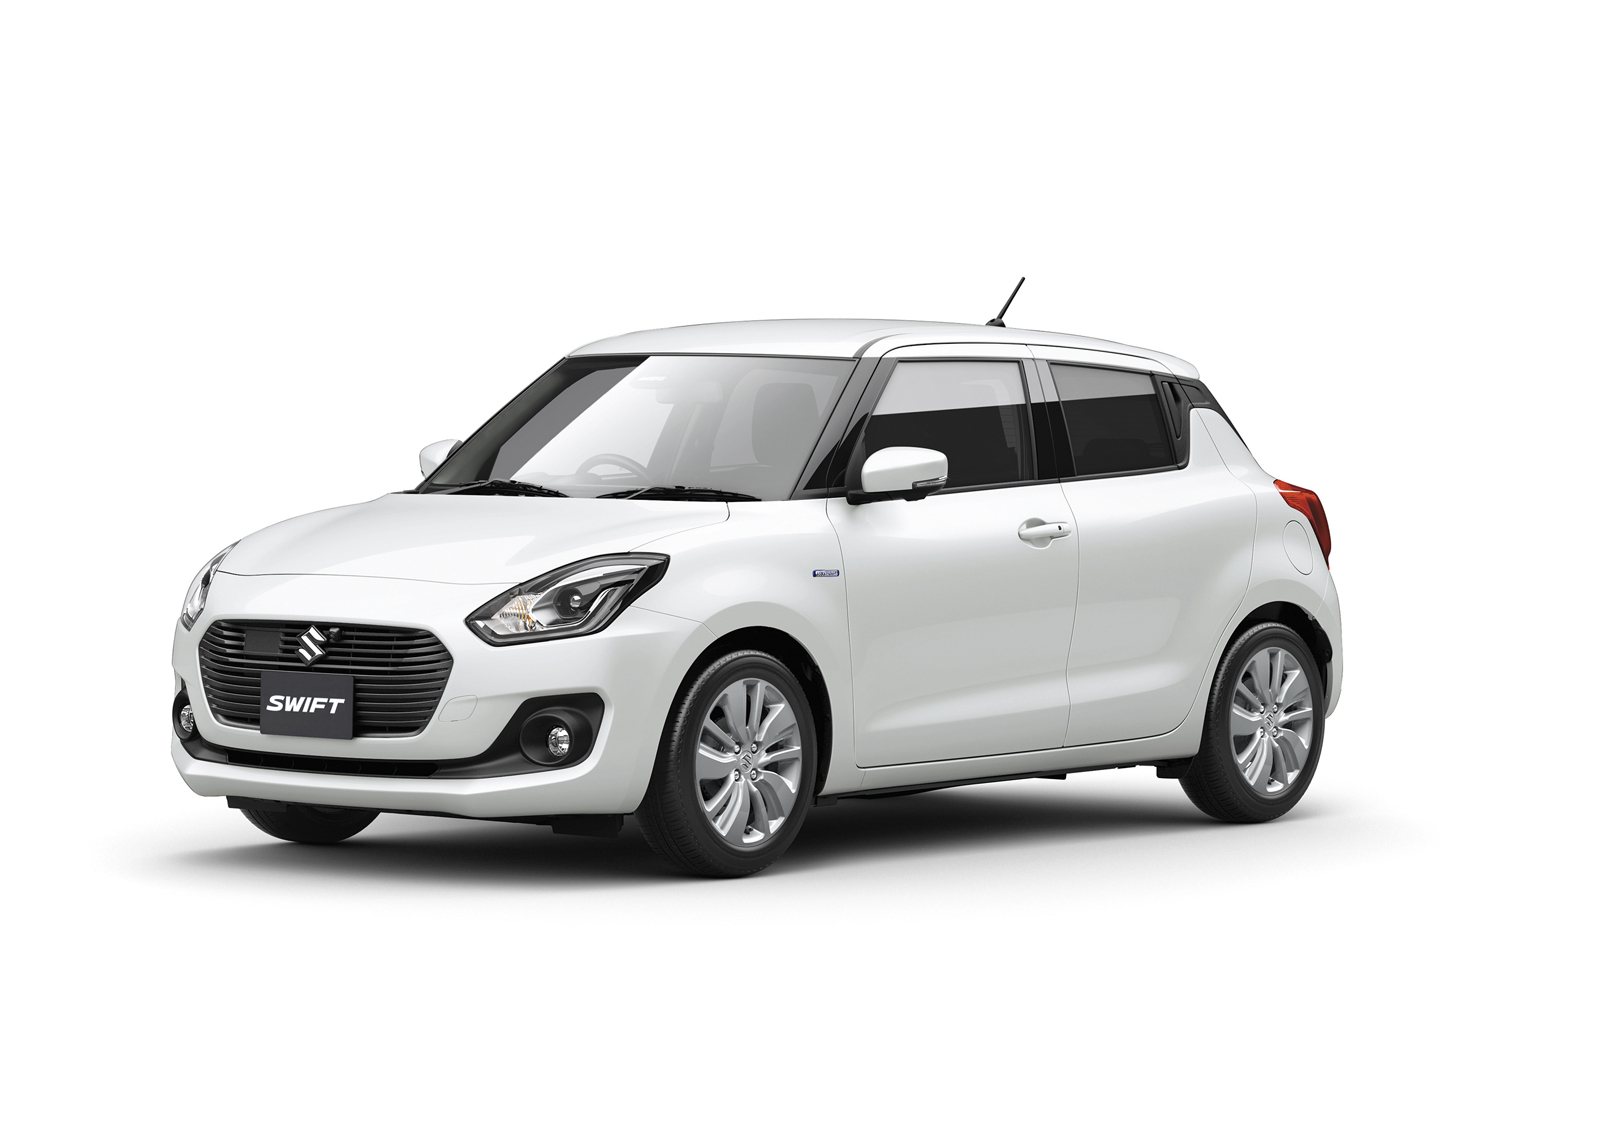 New 2017 Maruti Swift: 5 things to know